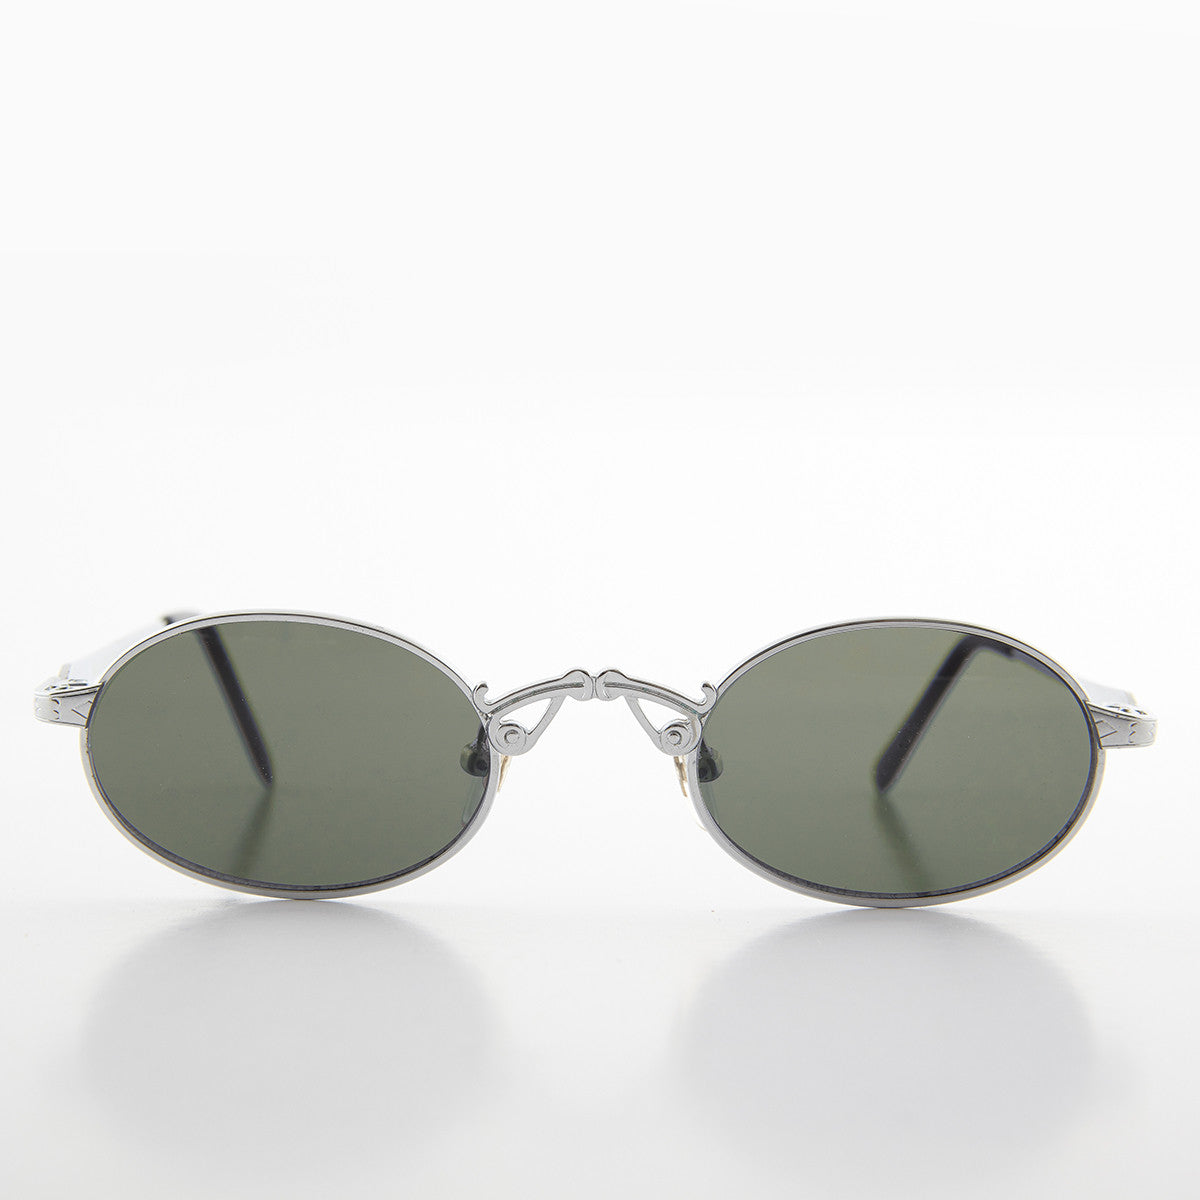 Oval Half-Eye Victorian Steampunk Metal Sunglass